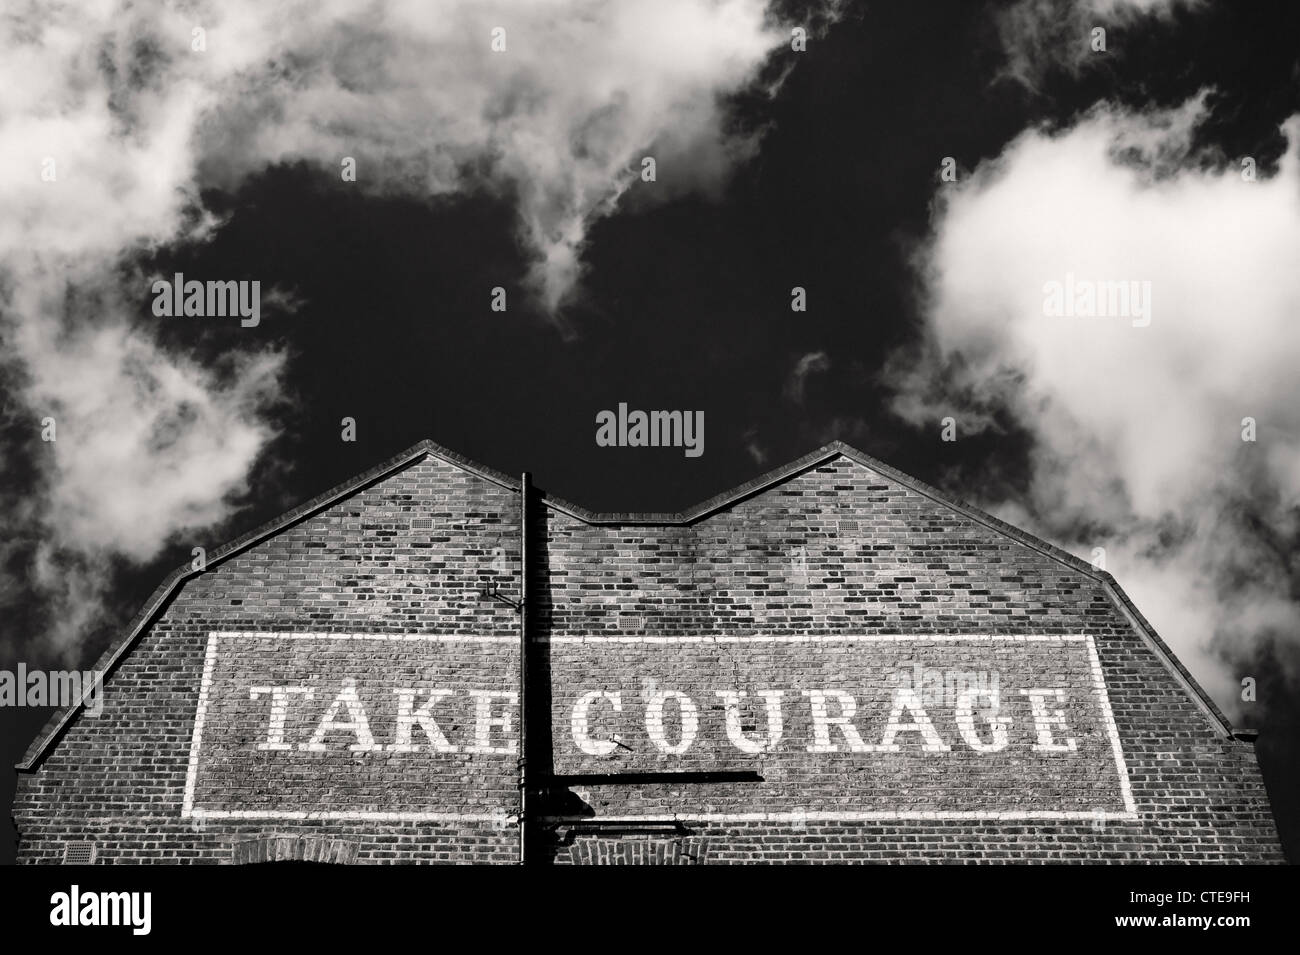 Building in Southwark London with Take Courage painted on it - Stock Image